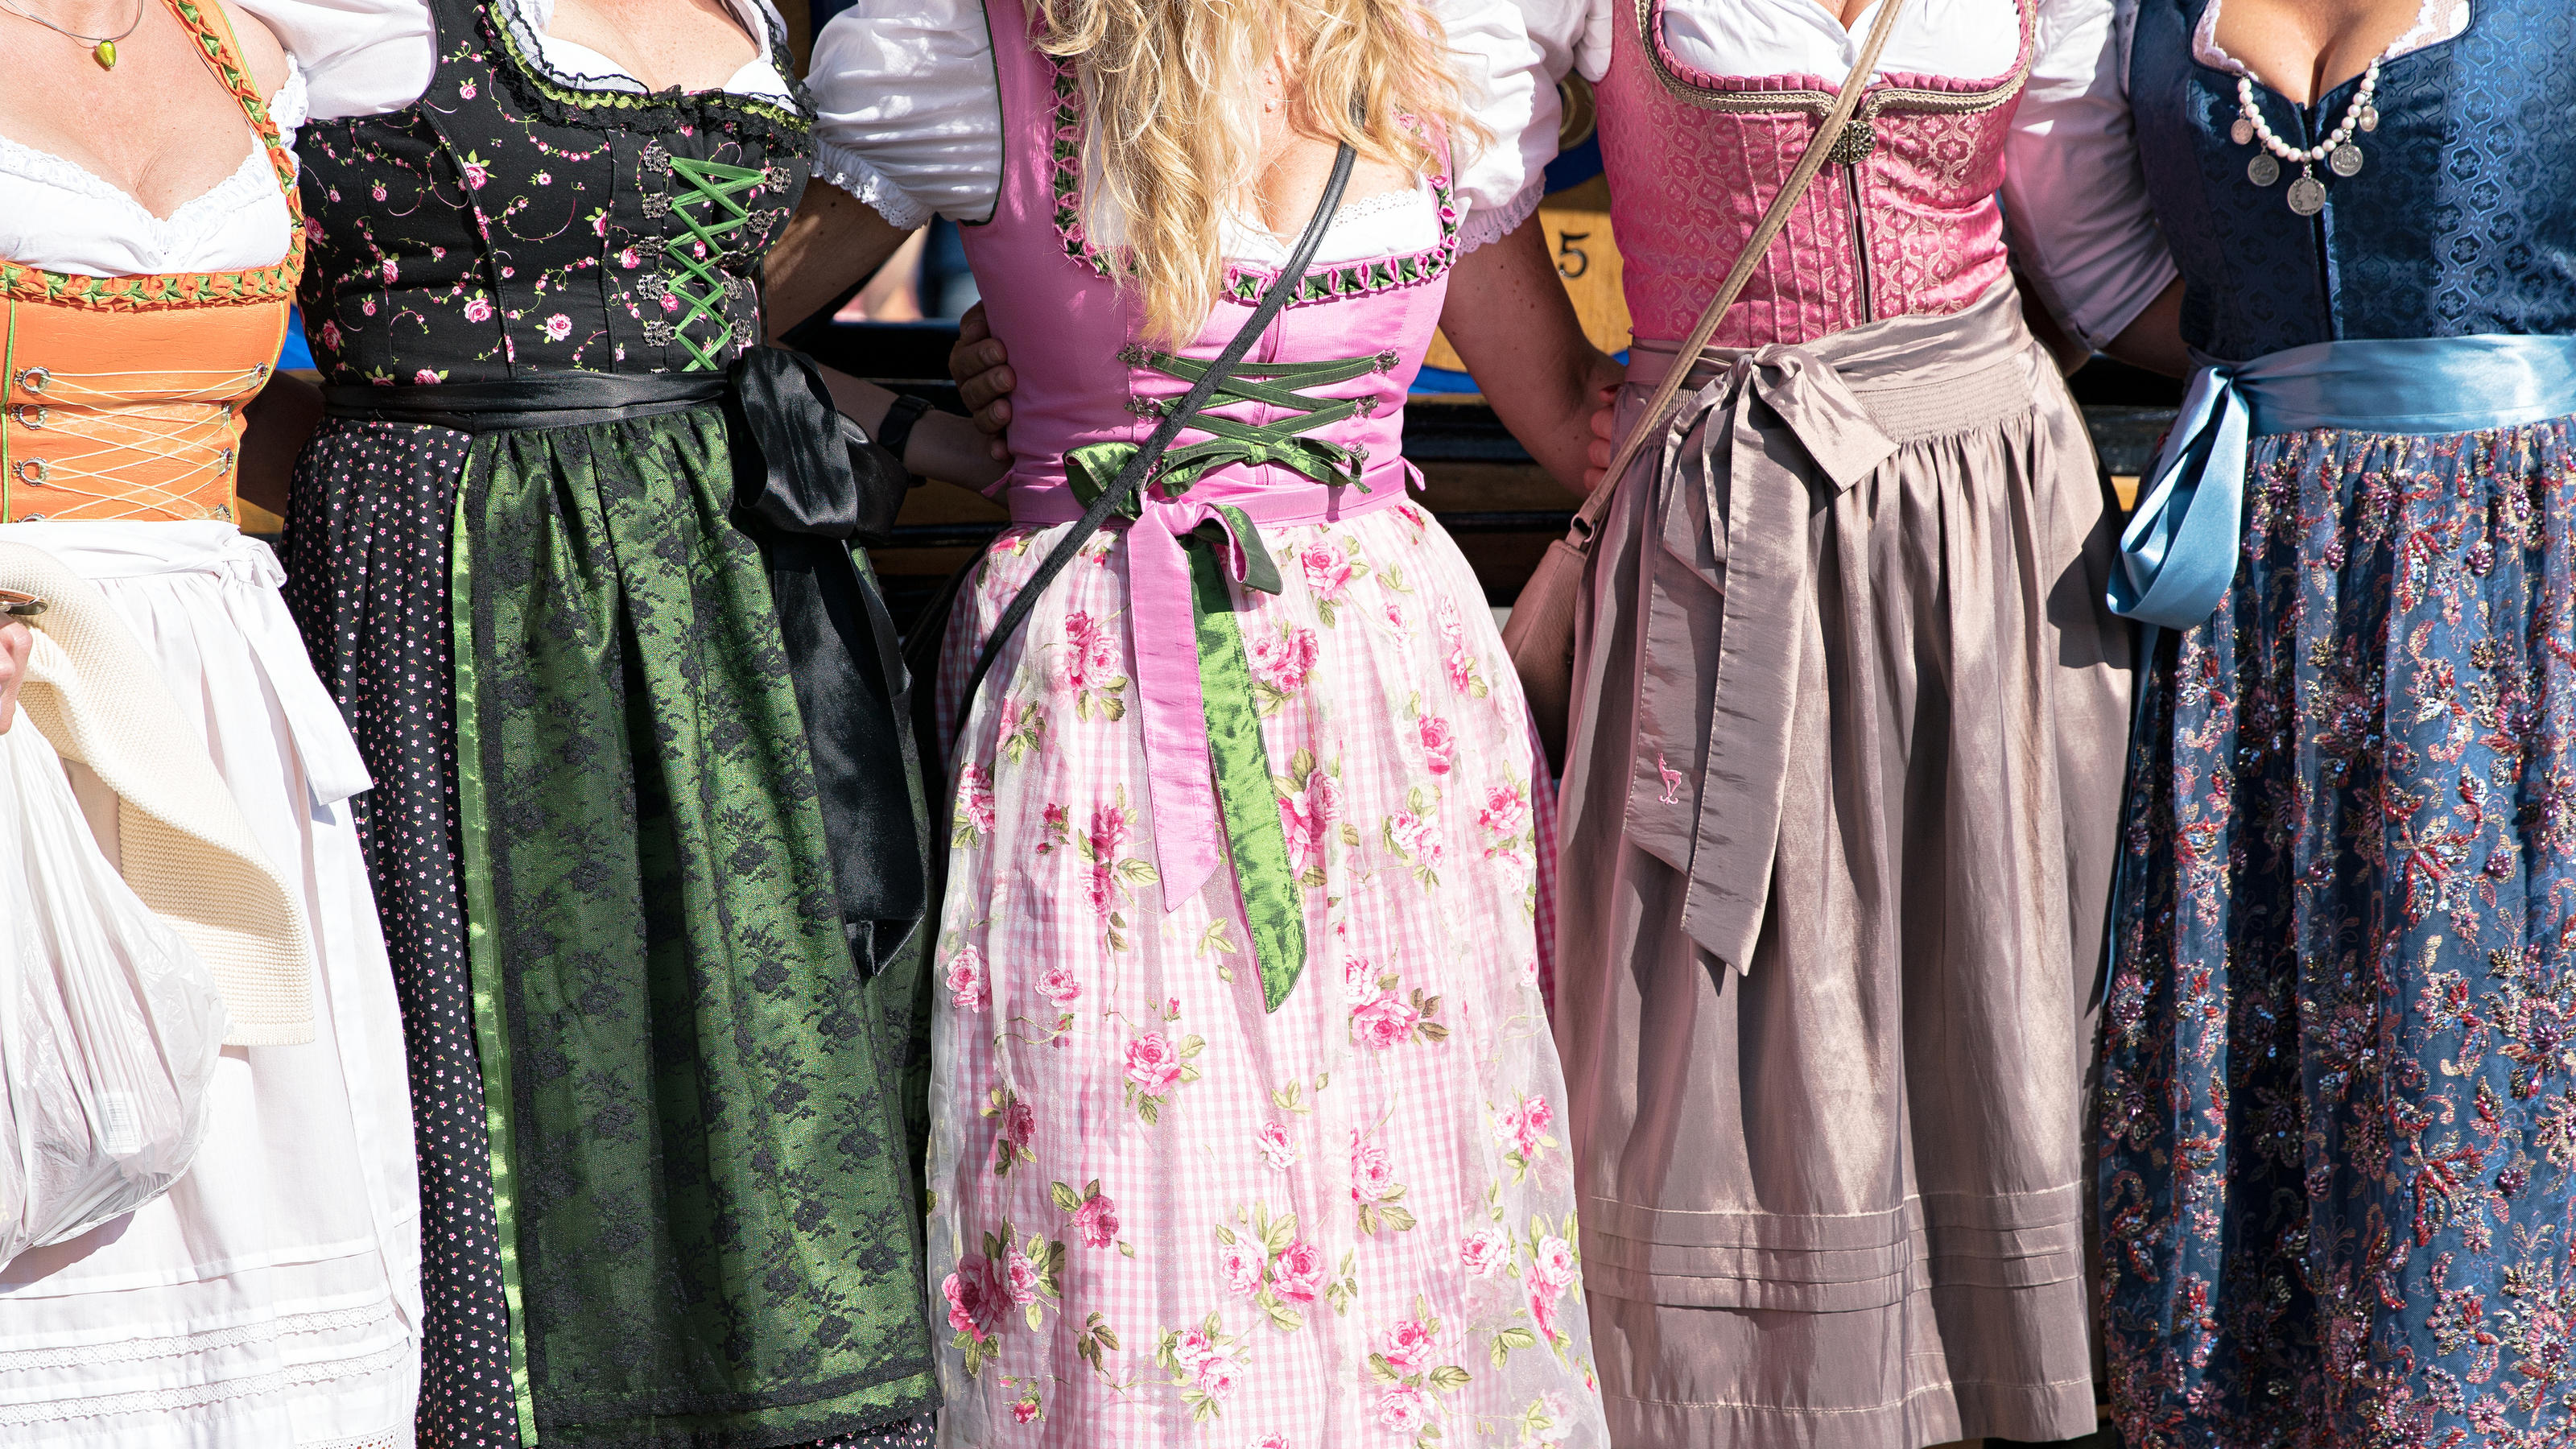 oktoberfest das sind die 6 gr ten dirndl fehler. Black Bedroom Furniture Sets. Home Design Ideas